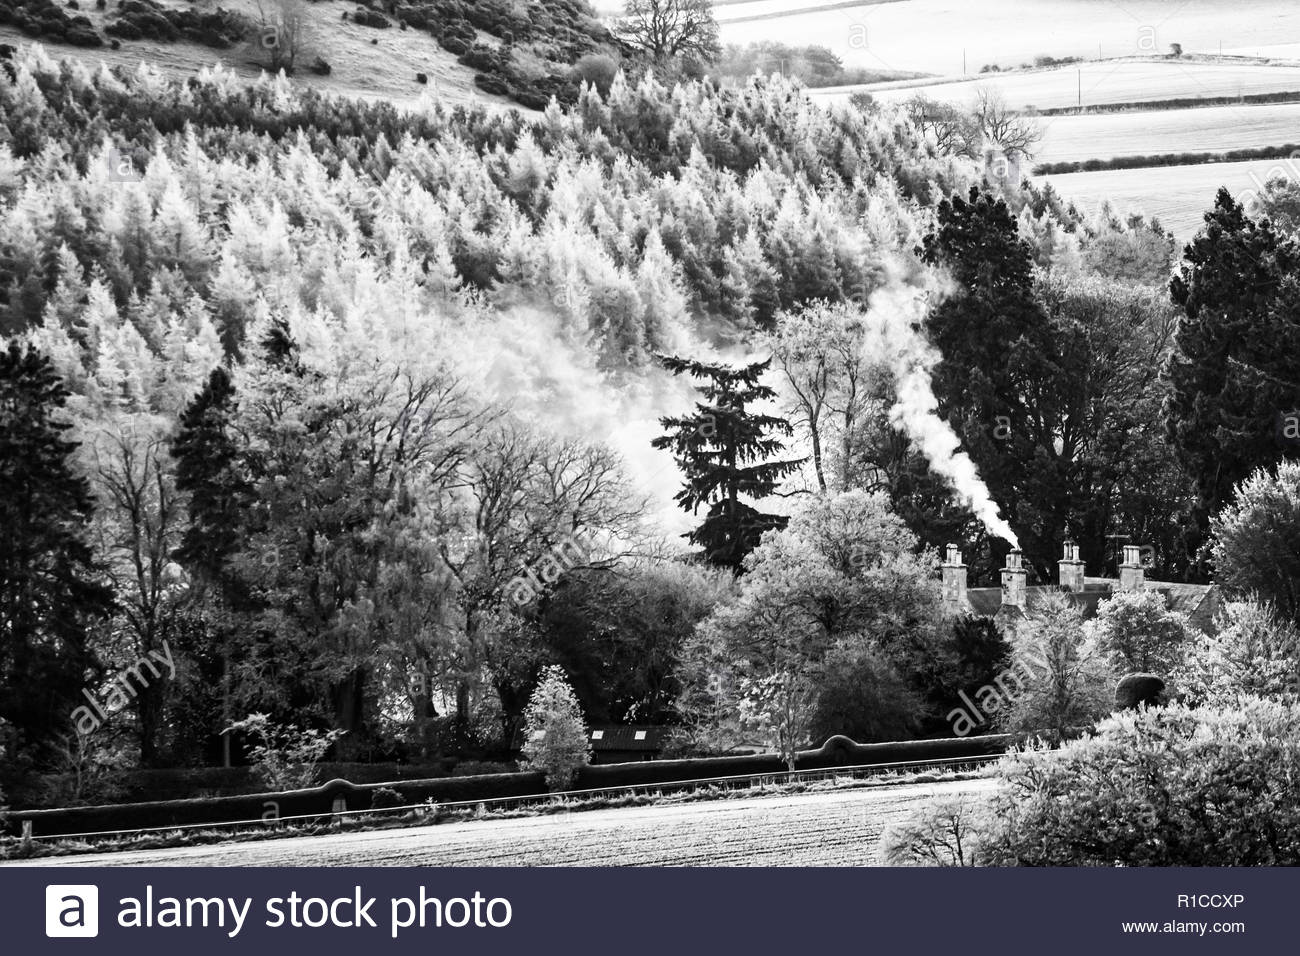 Oxnam, Jedburgh, Scottish Borders, UK. 29th October 2018. Home fires burn early at Oxnam Row Farmhouse as a heavy frost greeted the Scottish Borders o - Stock Image